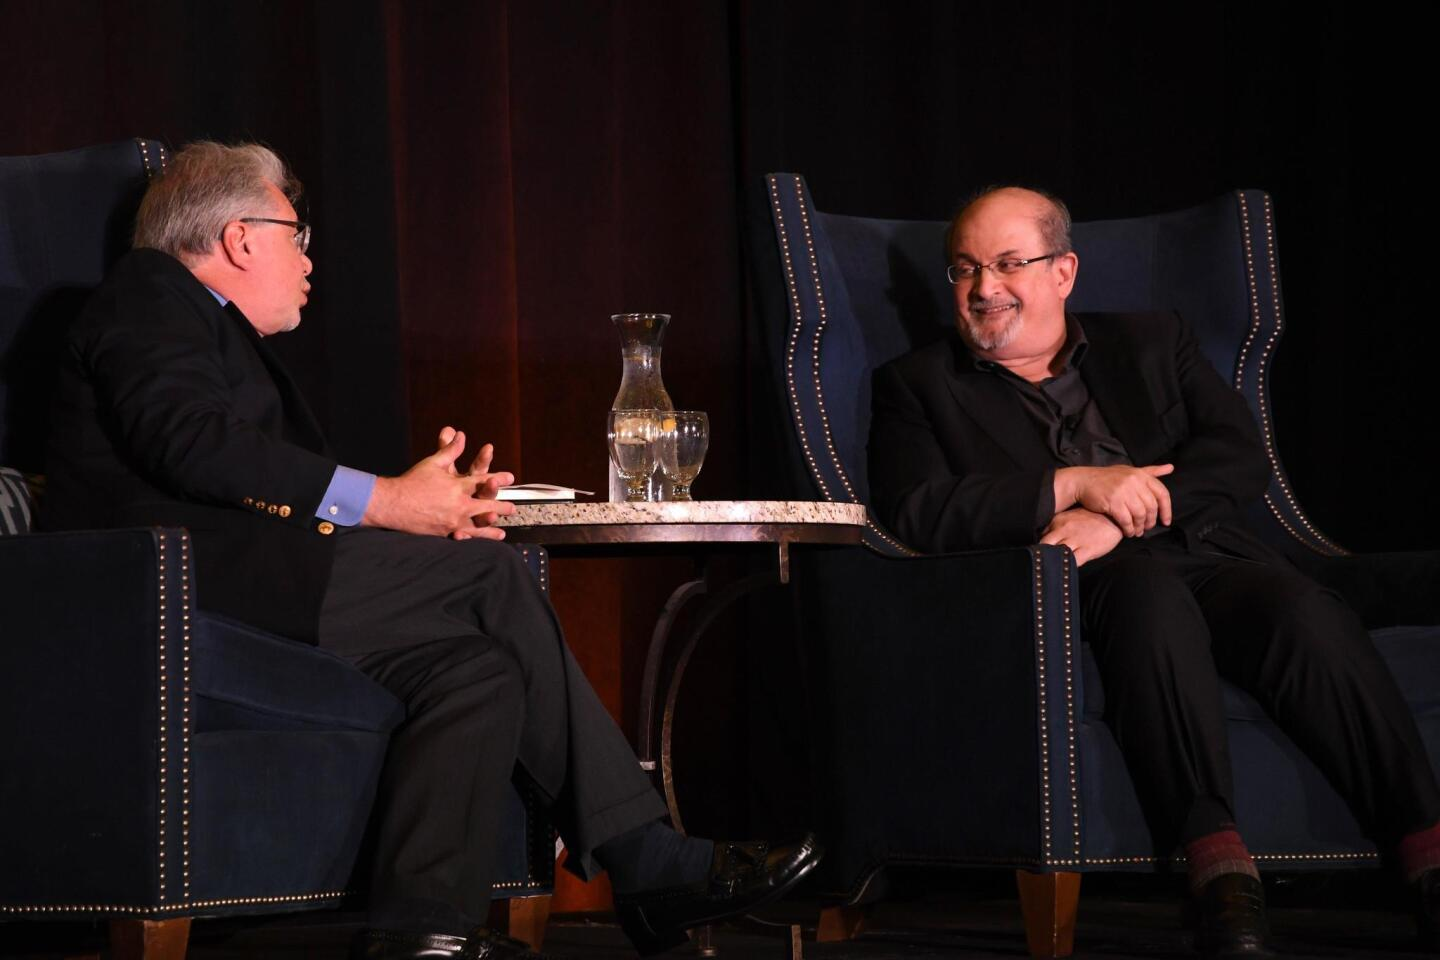 Words Alive event features author Salman Rushdie